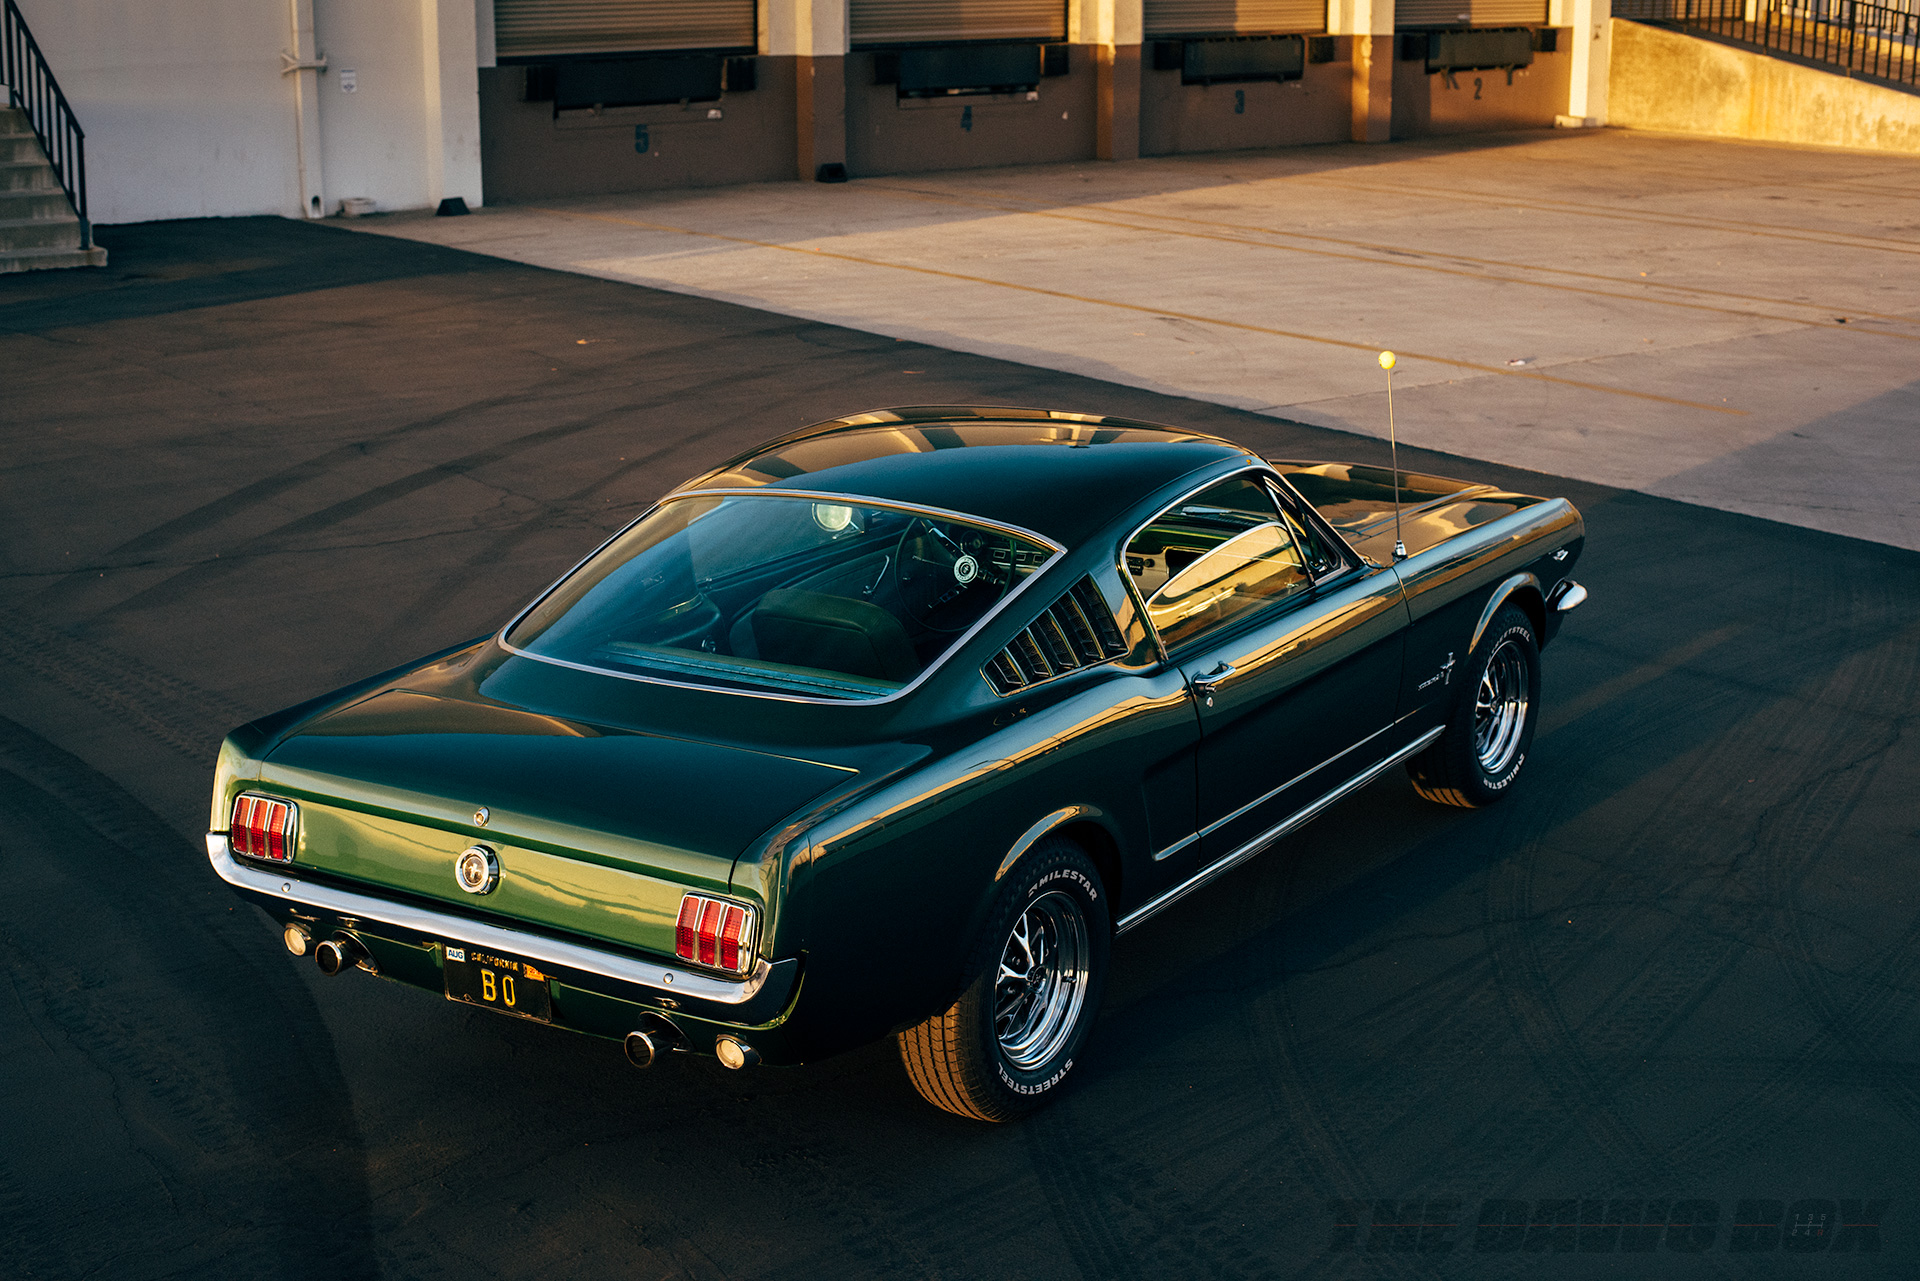 Back view of the Green 1965 Mustang Fastback 2+2 sitting in front of a shipping dock